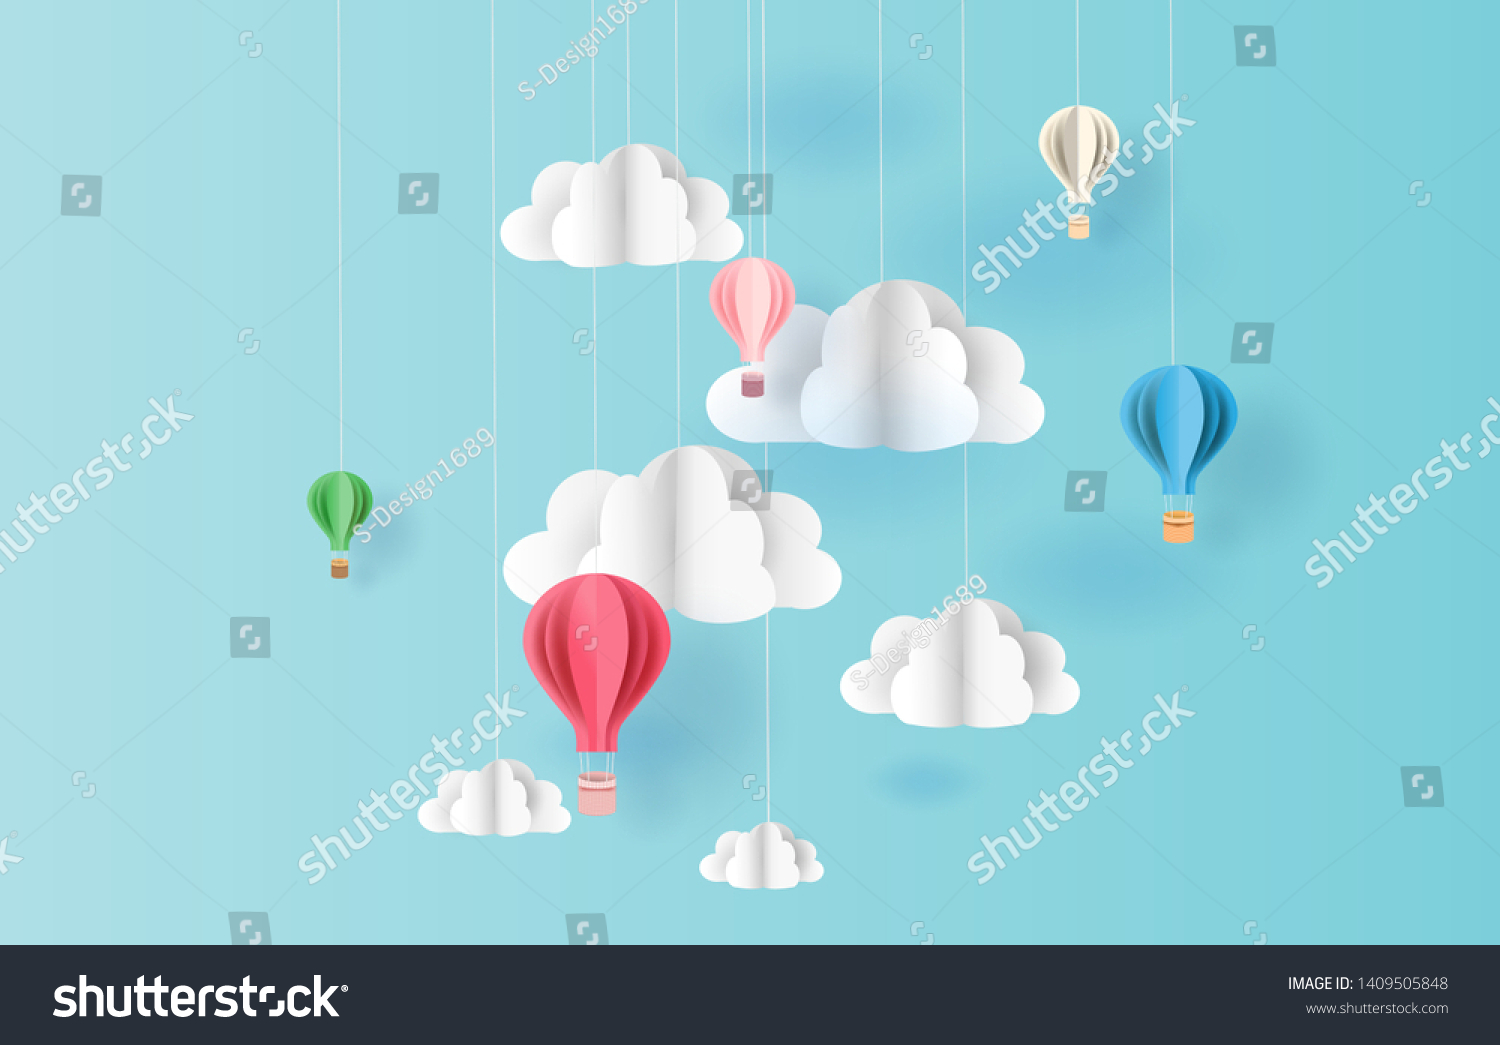 paper art style of balloons colorful color floating in air blue sky background.Creative design space for Christmas day,Festival,holiday,summer season,springtime.Good idea Pastel color.vector EPS10